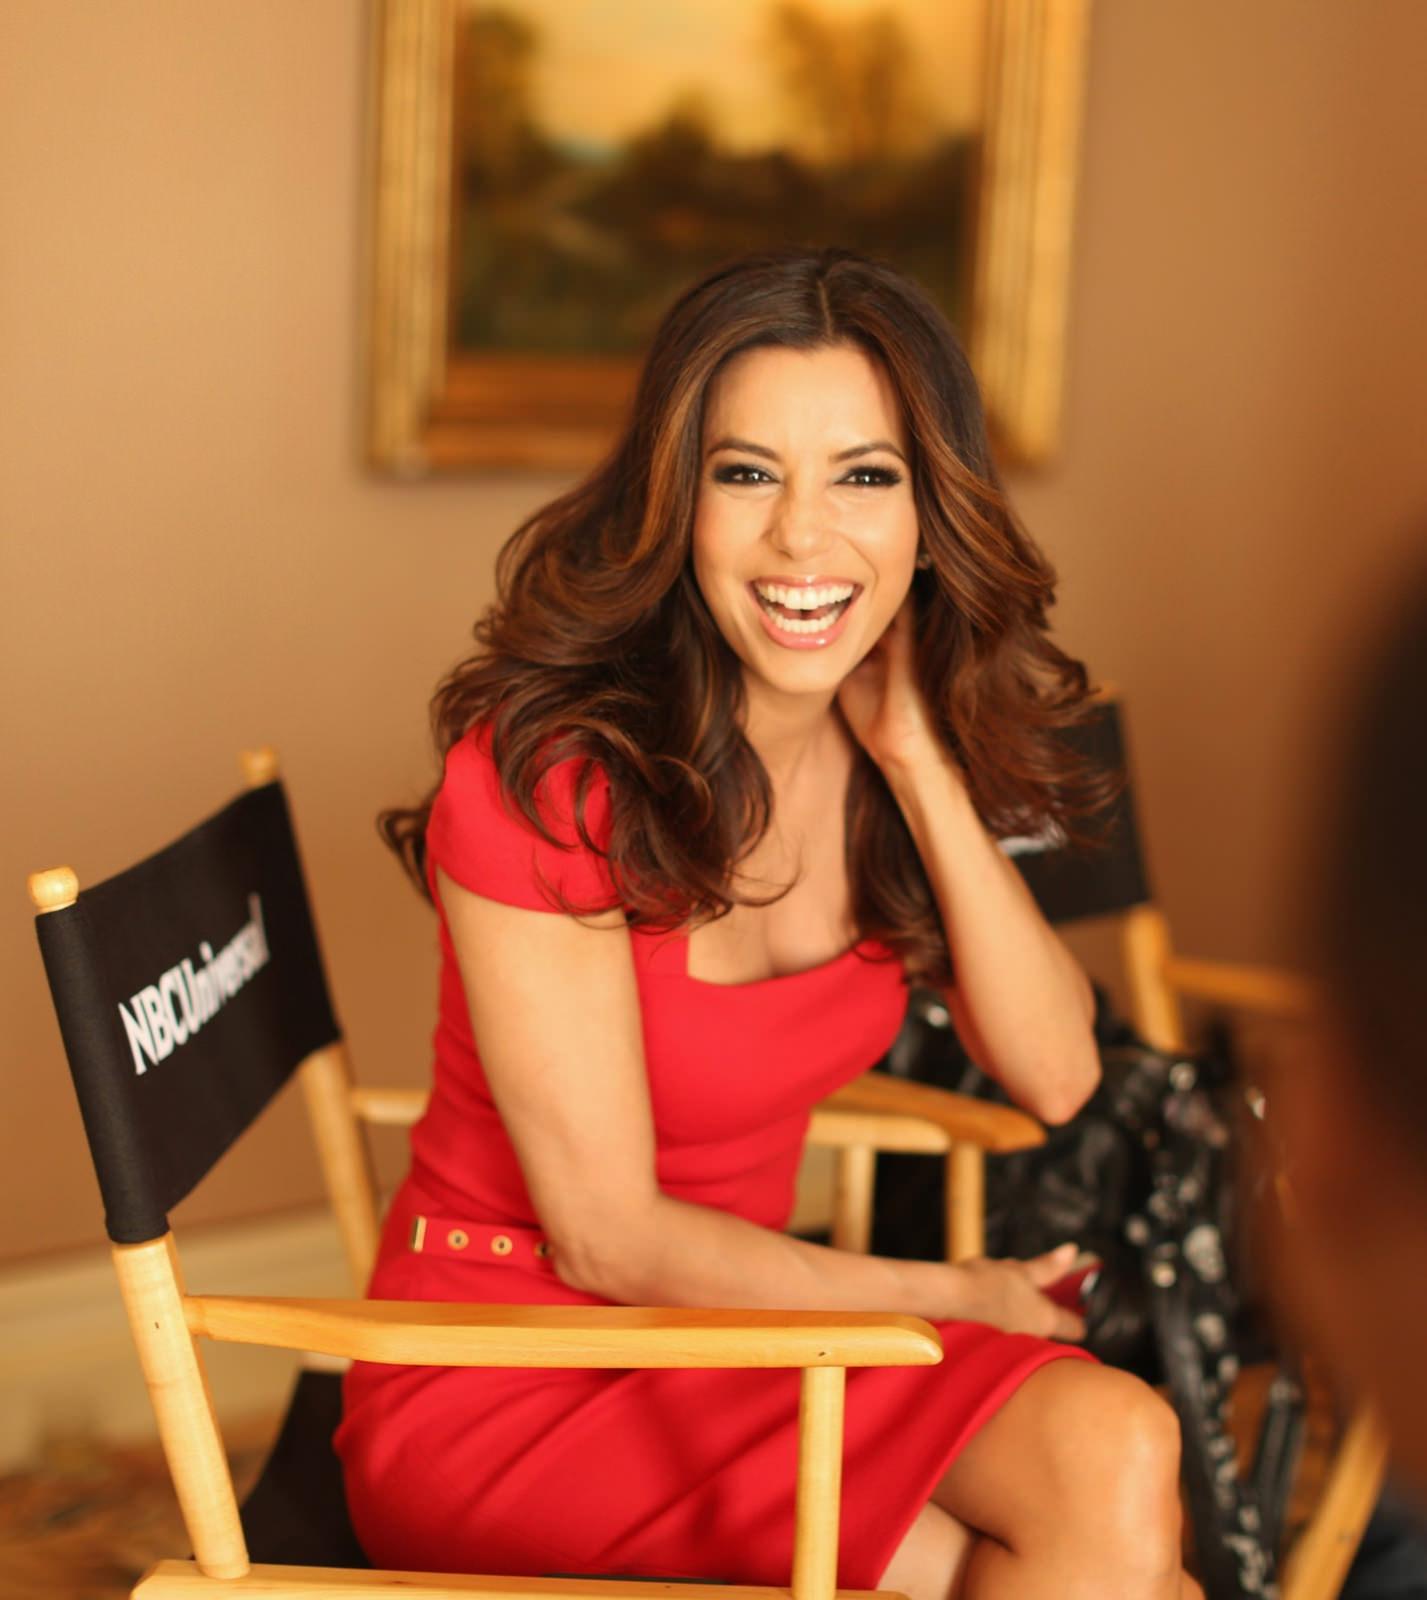 Eva Longoria Photo Gallery